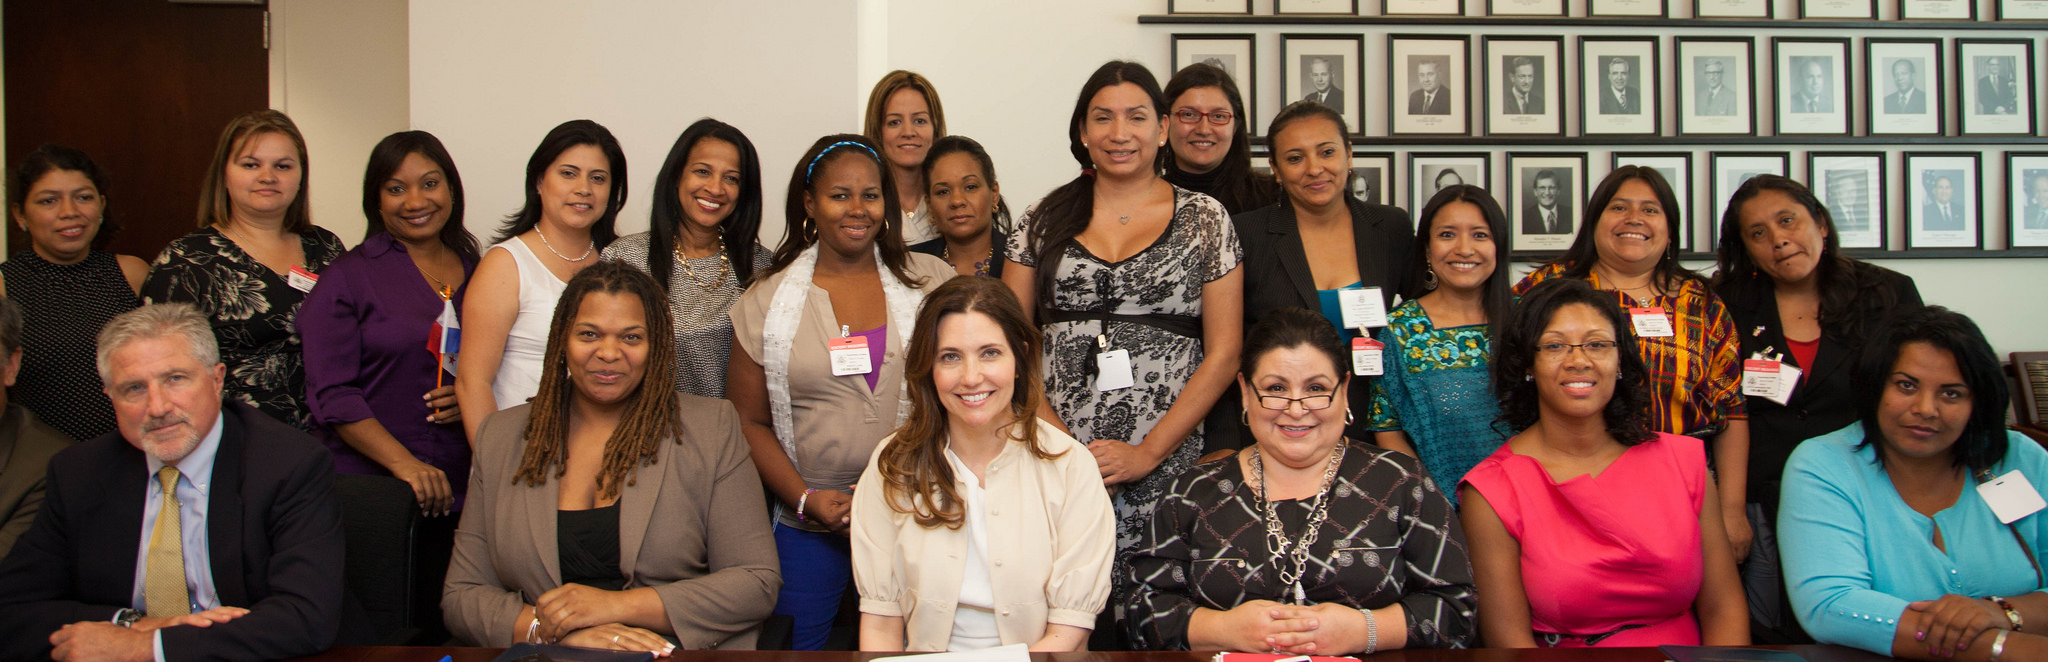 Assistant Secretary Ryan and the entire group of participants in the Mujeres Adelante program